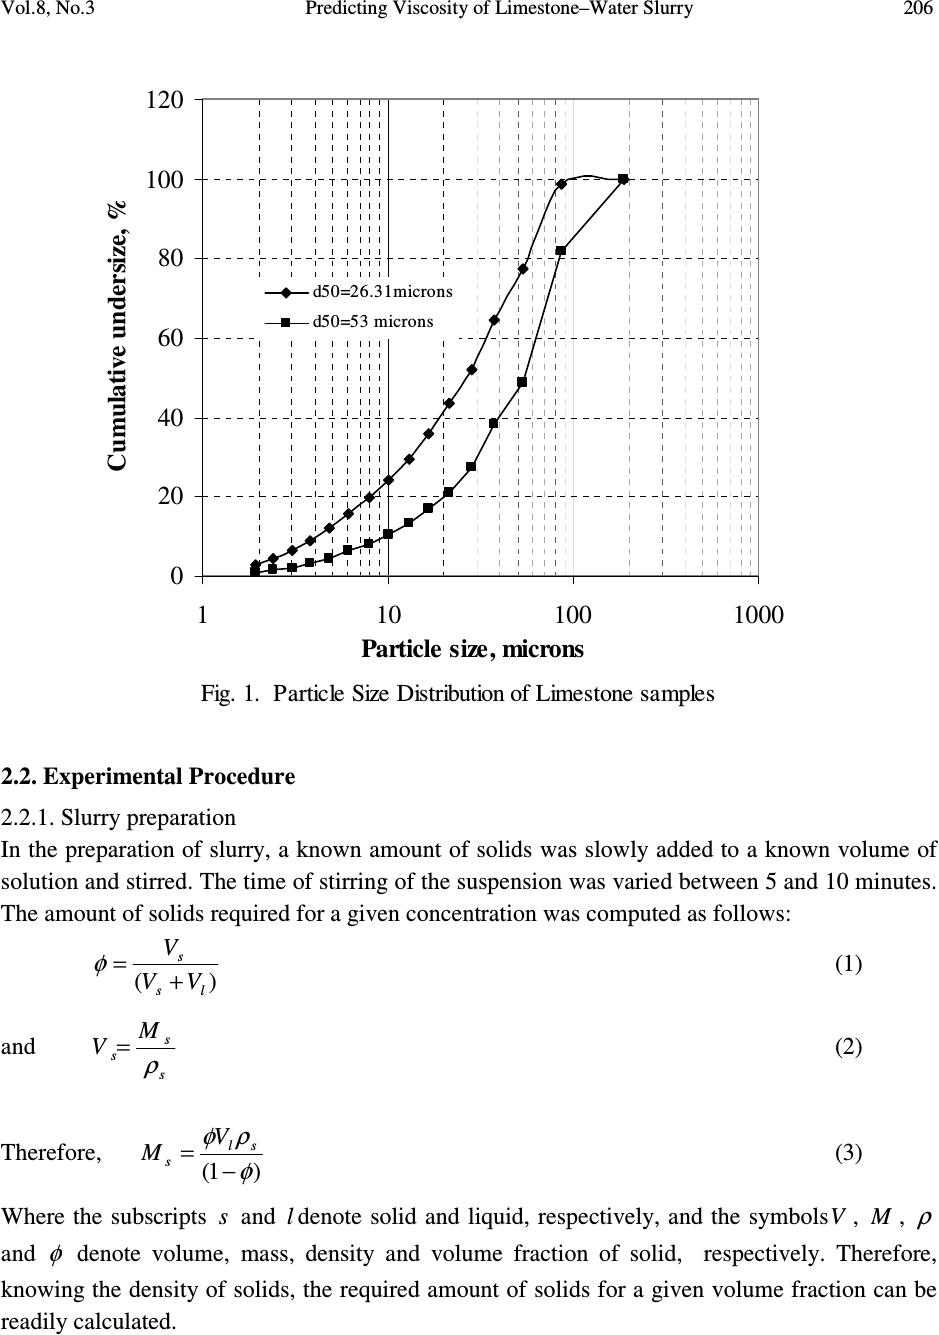 predicting viscosity of limestone�water slurry